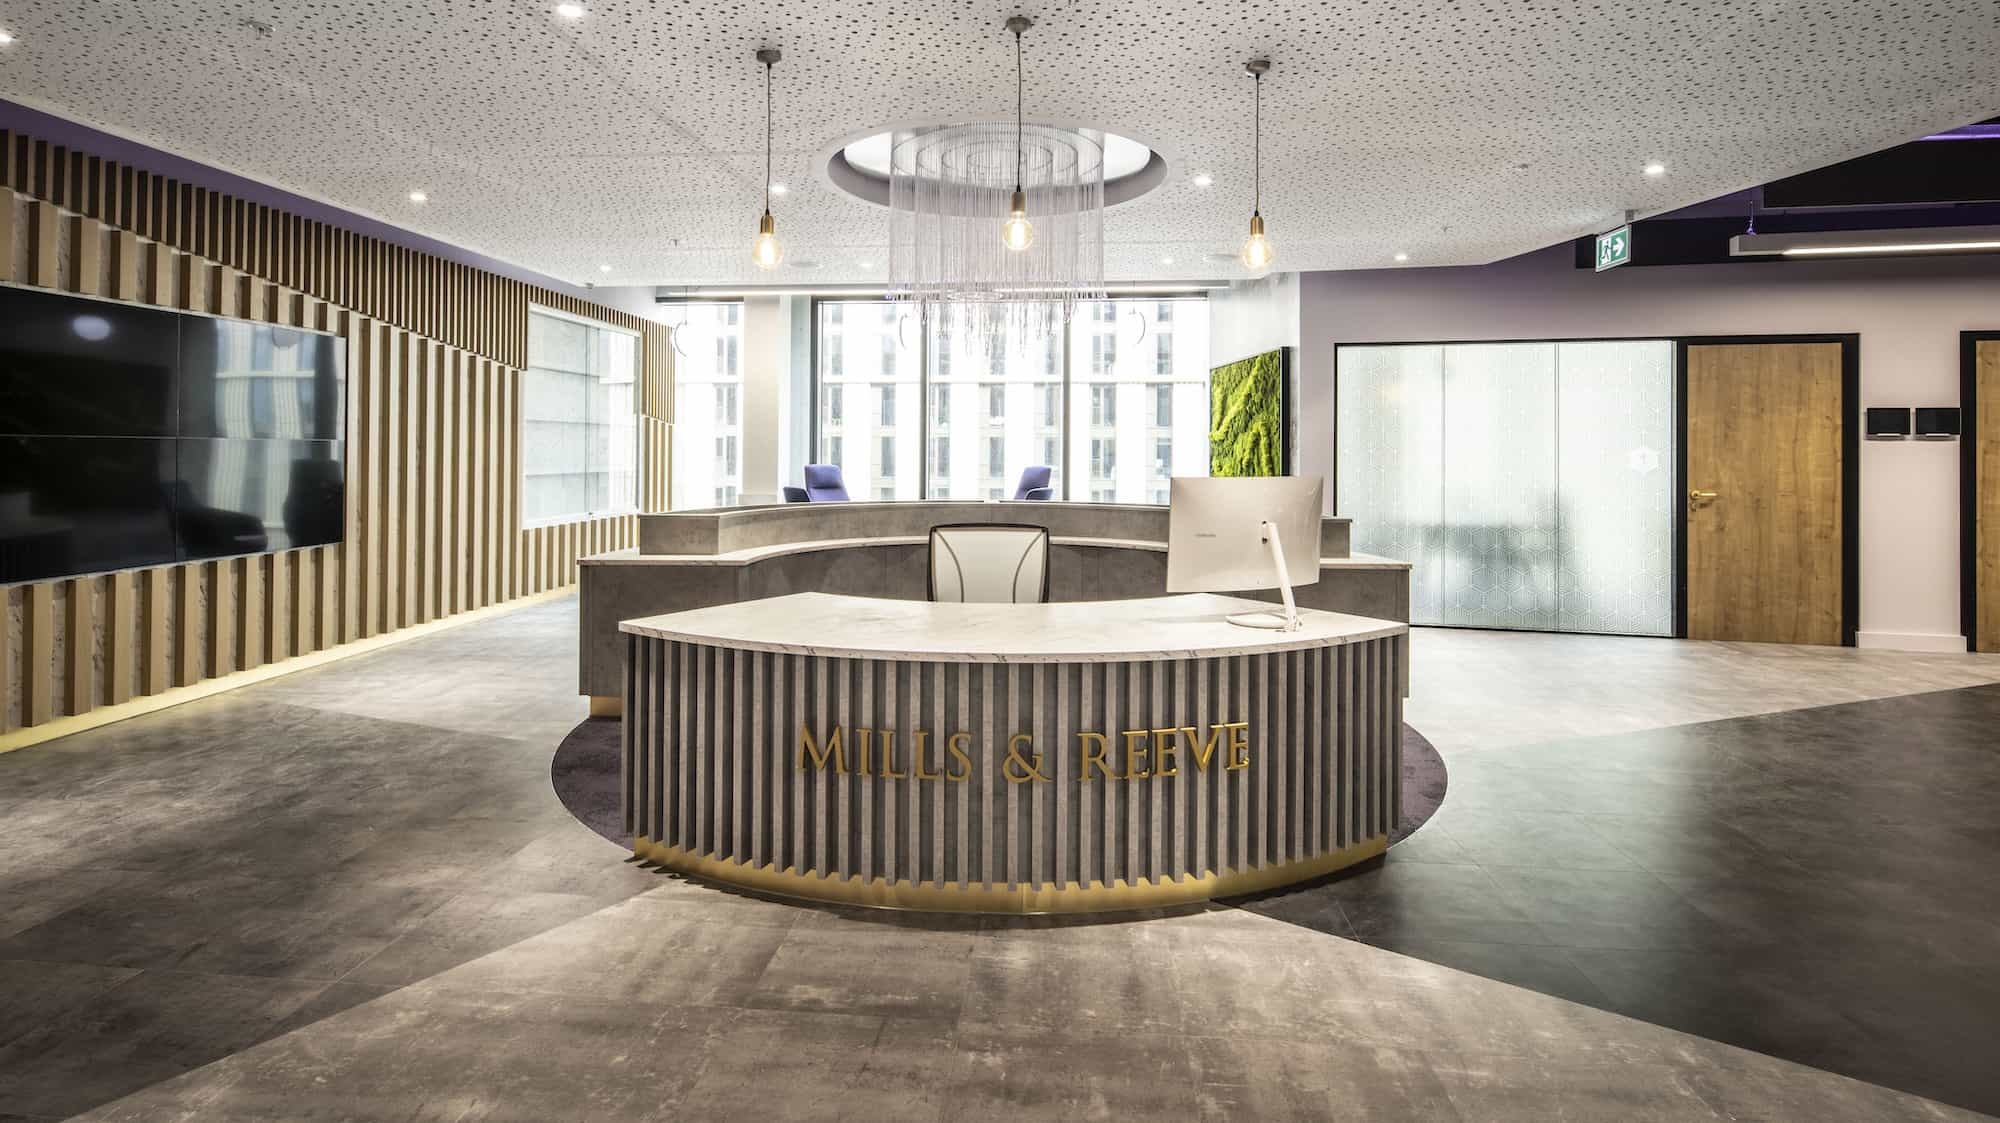 Mills Reeve reception design and build